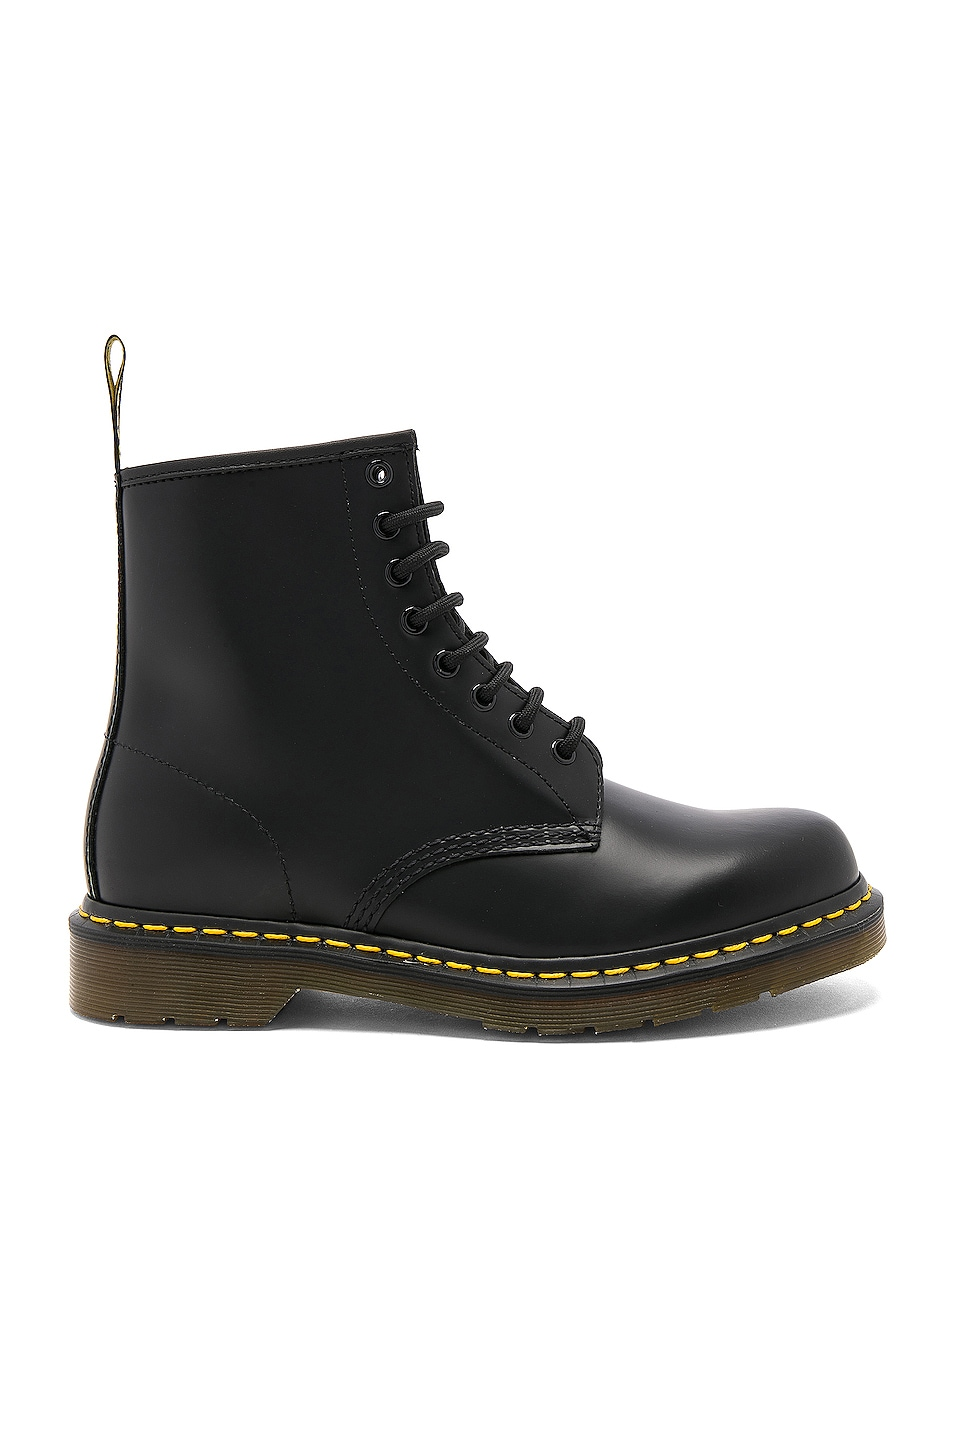 Dr. Martens BOTAS 1460 8 EYE LEATHER